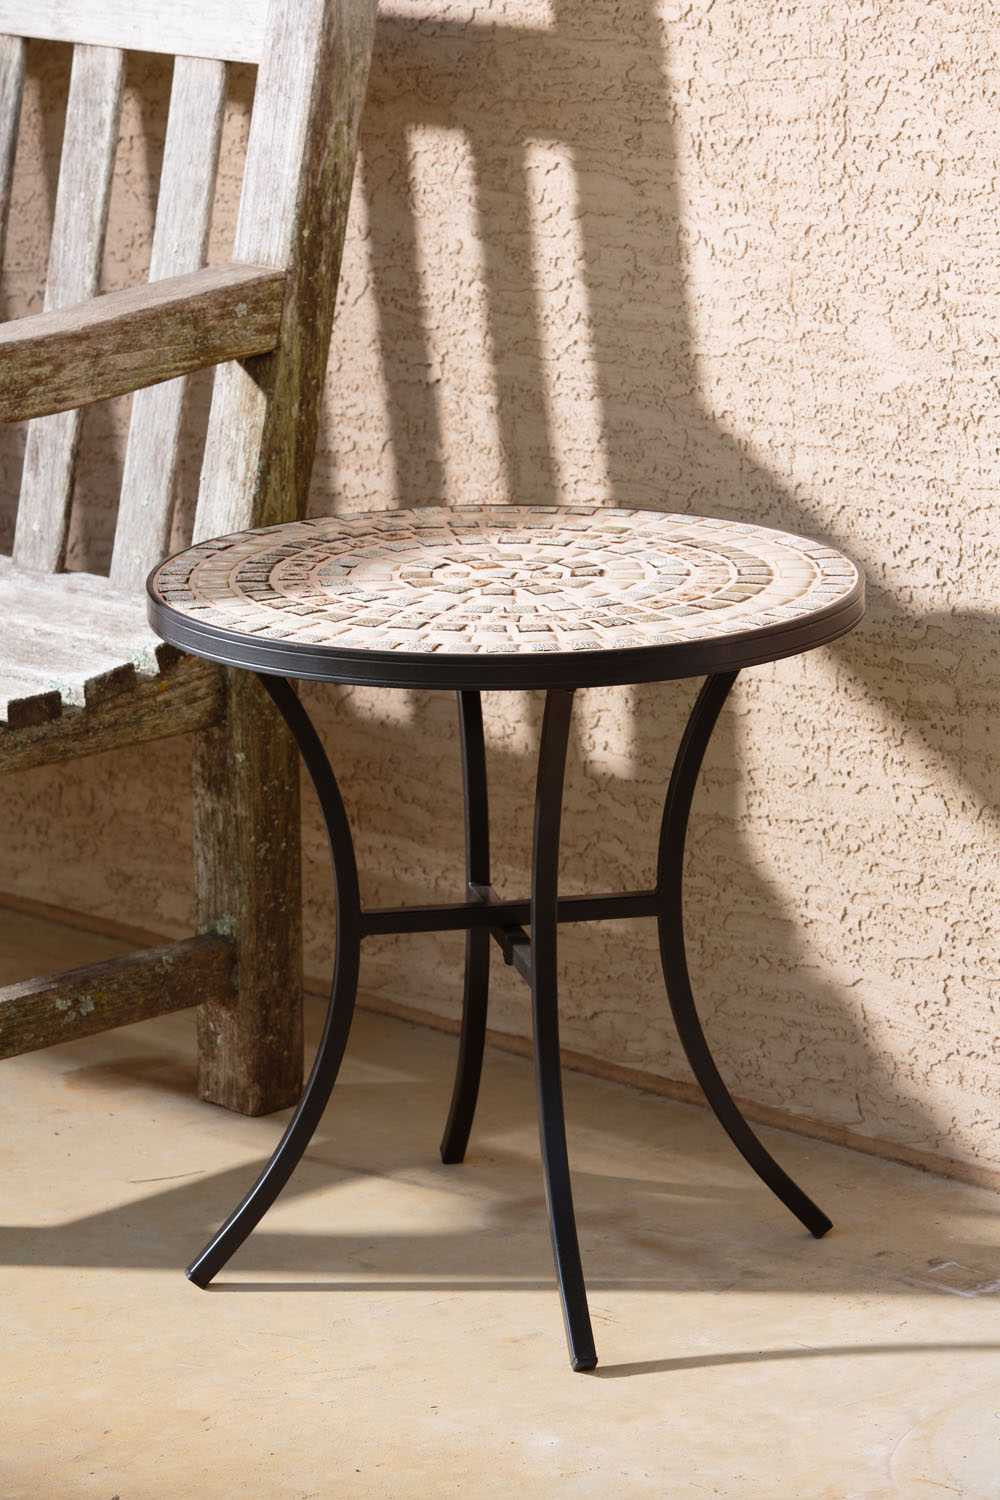 Best ideas about Outdoor Side Table . Save or Pin Alfresco Home Boracay Wrought Iron 20 Round Ceramic Mosaic Now.